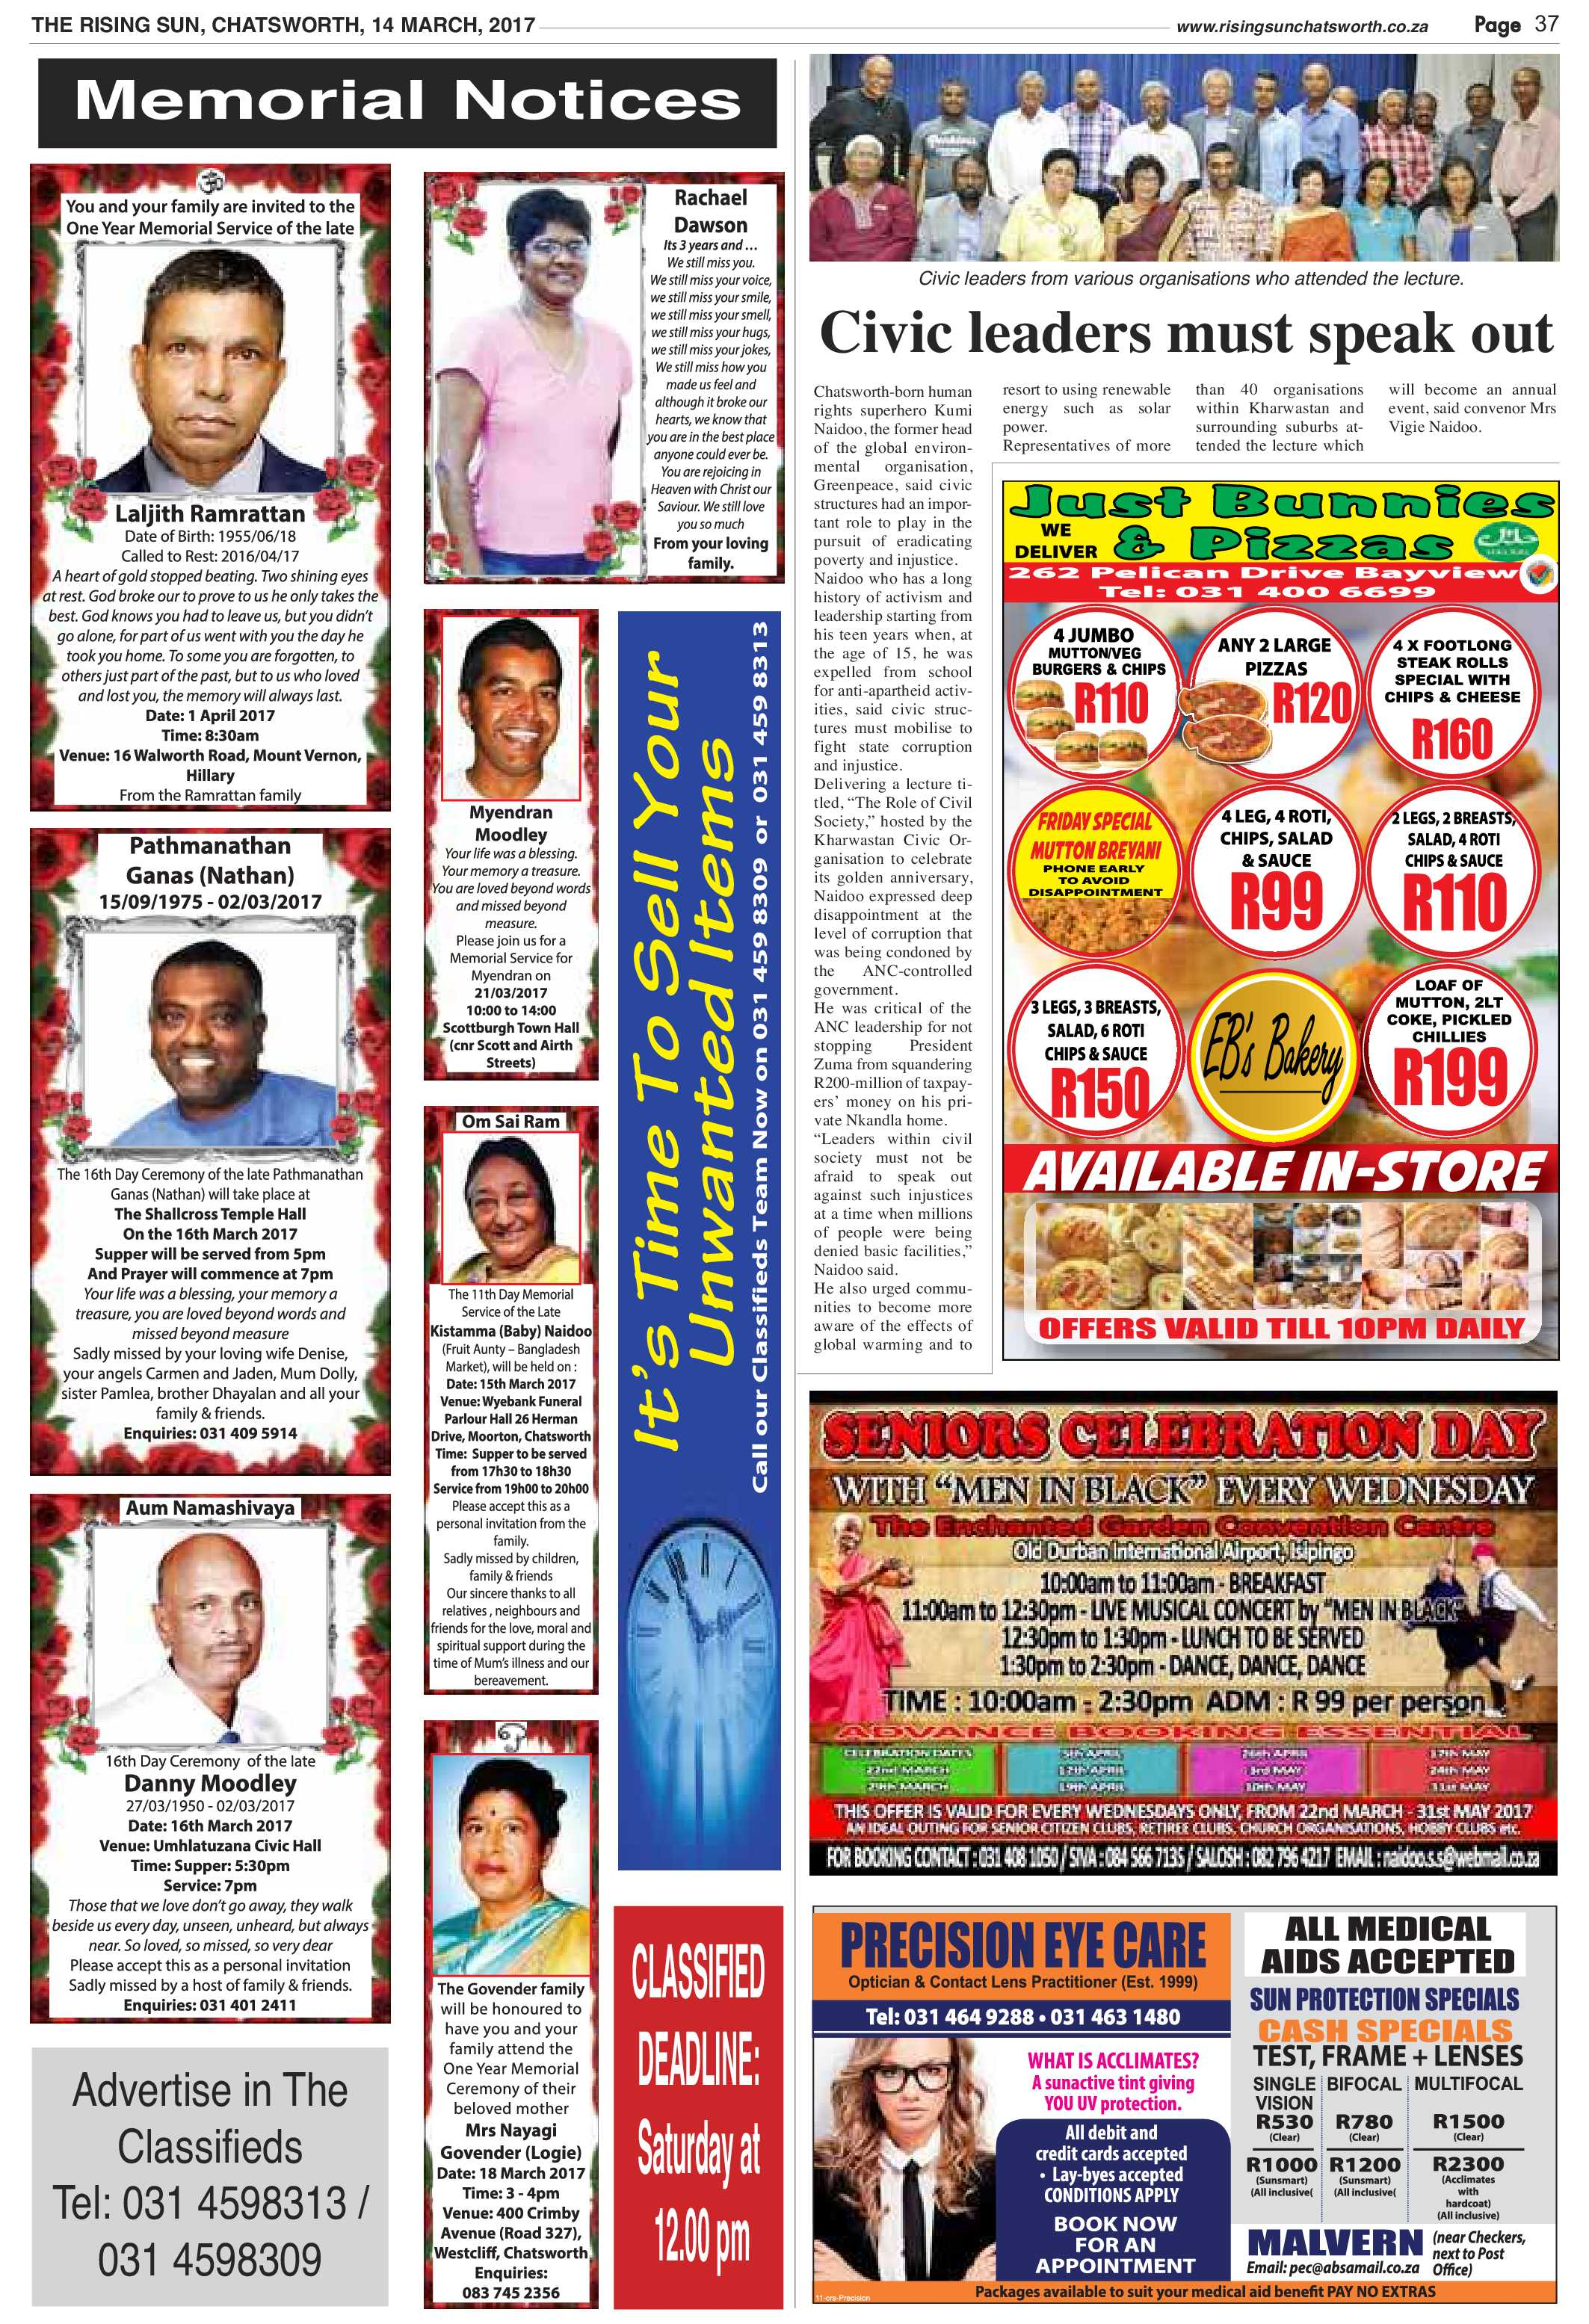 chatsworth-police-slammed-epapers-page-37